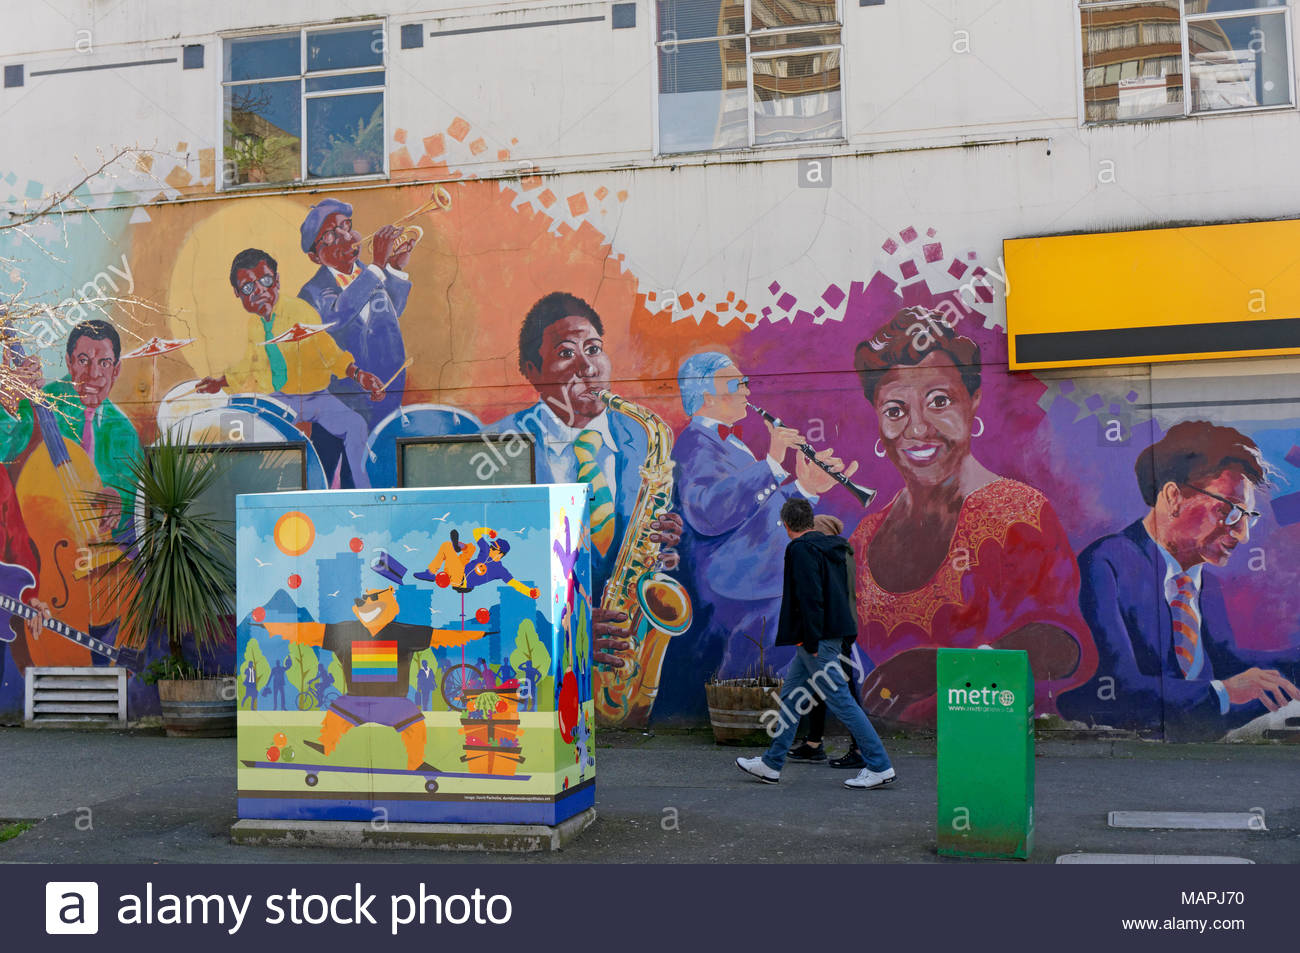 colorful-street-art-in-the-west-end-neig